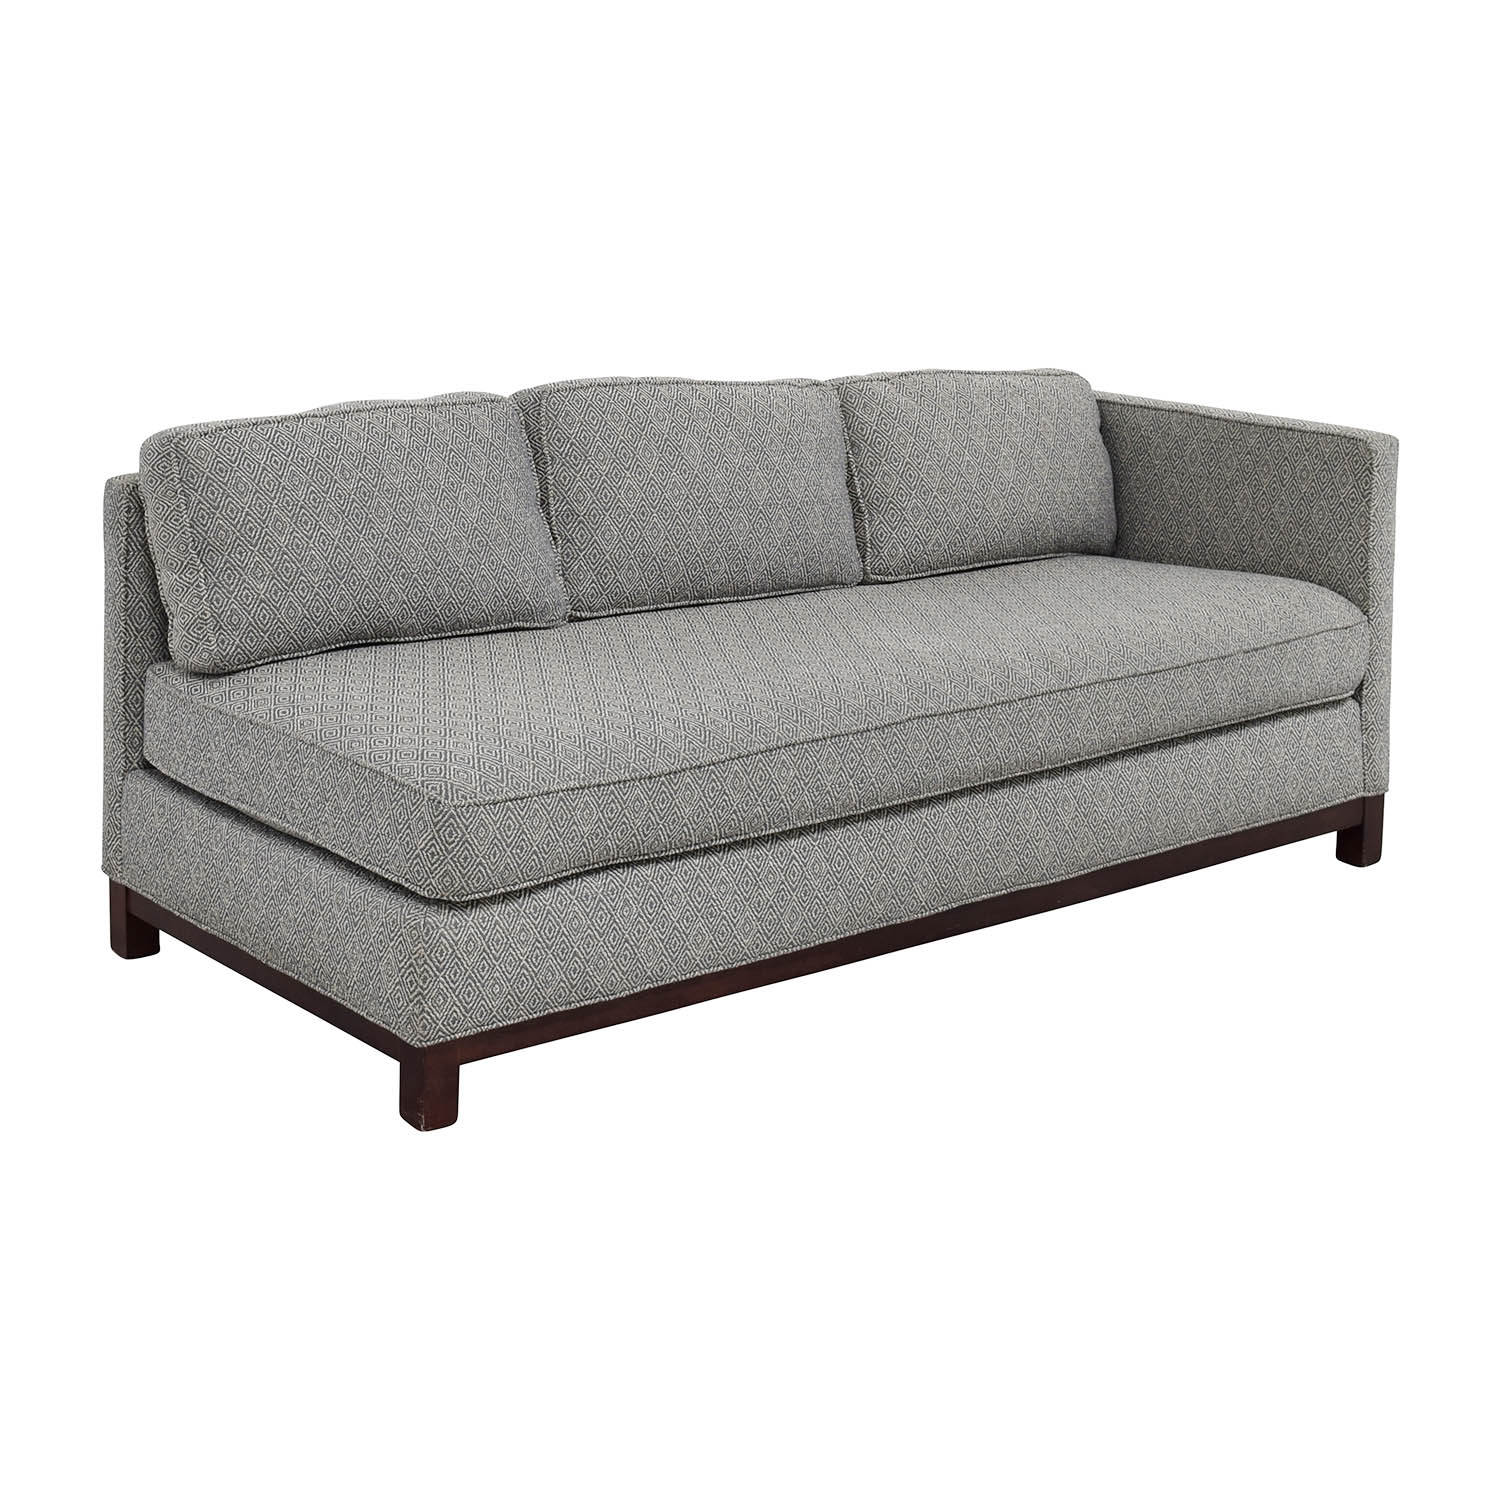 mitchell gold sofa. Buy Mitchell Gold Clifton Sofa R